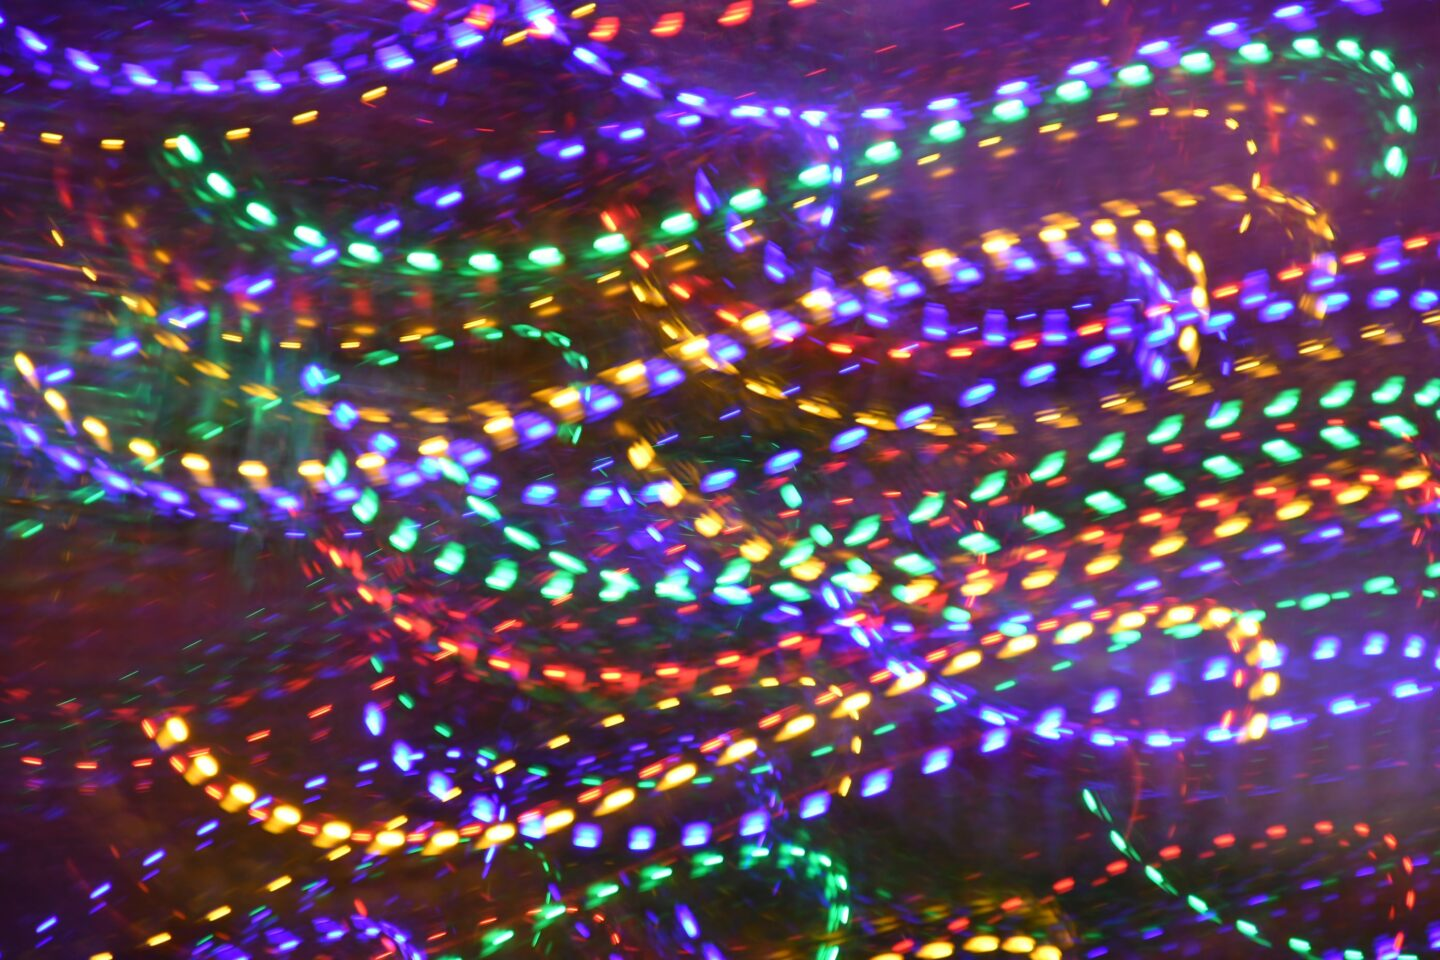 Strings of coloured lights